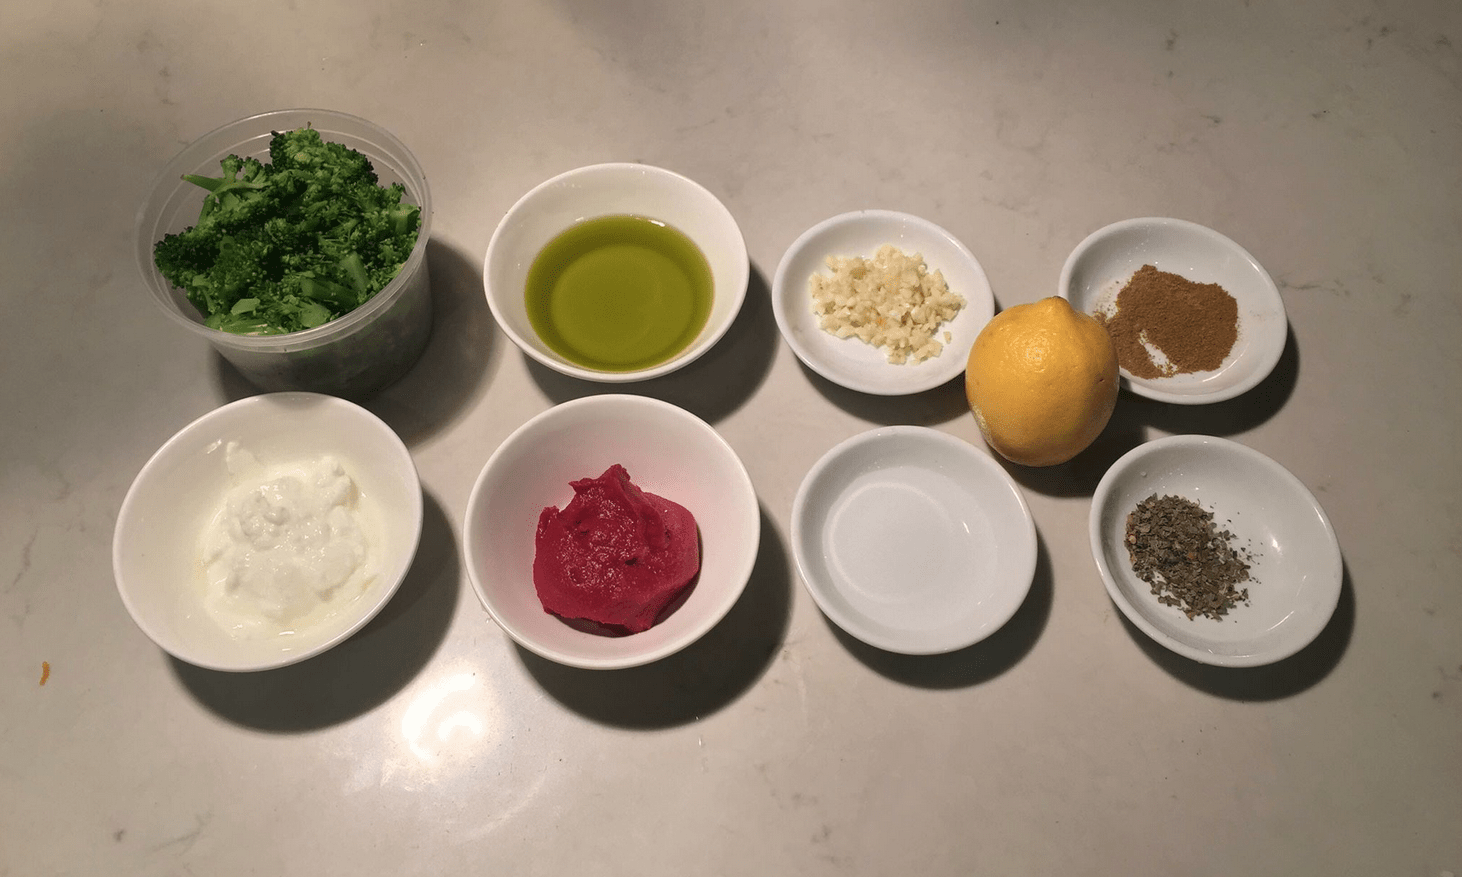 The Urban Peasant's Leftover Broccoli Sauce mise en place.